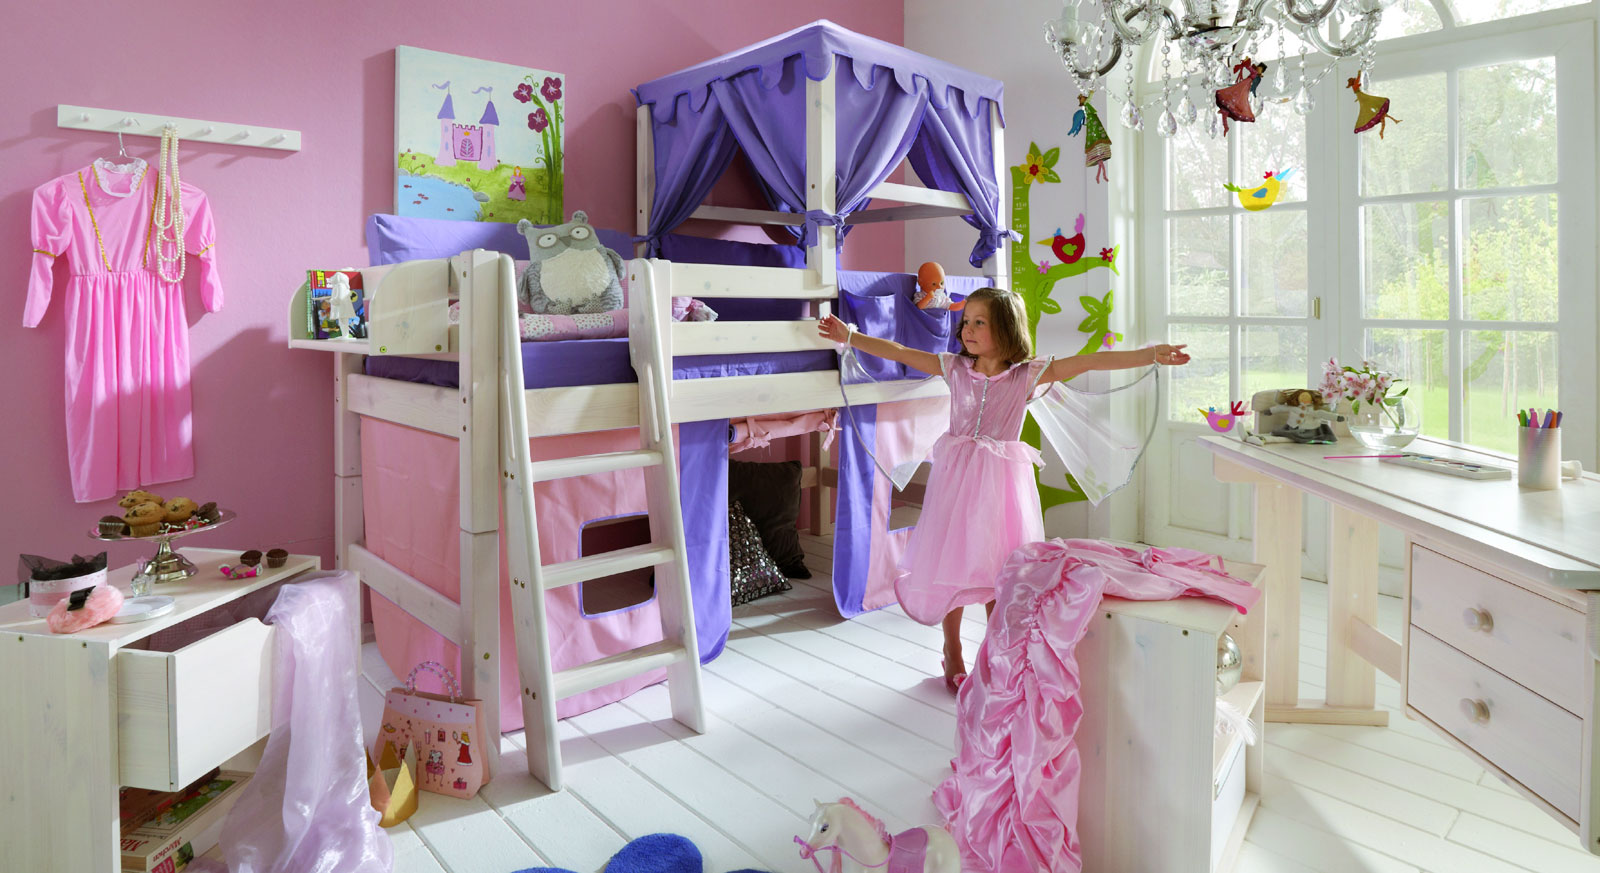 prinzessin hochbett kids paradise in wei inklusive vorhang. Black Bedroom Furniture Sets. Home Design Ideas